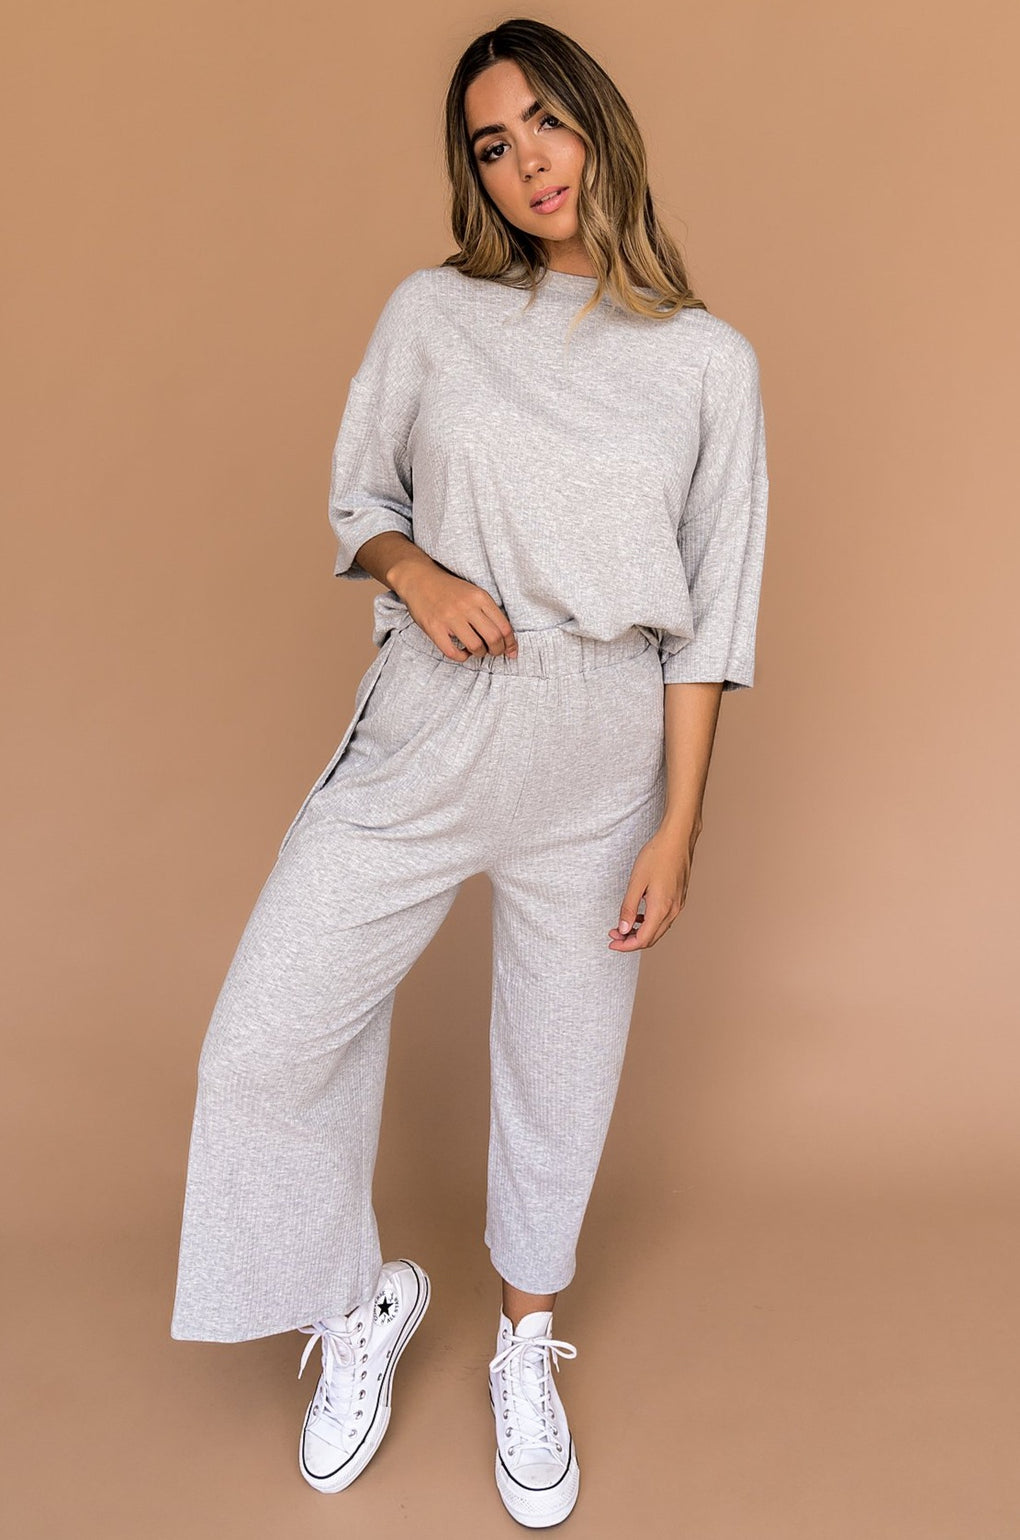 LALA ORIGINAL DESIGN: Lex Ribbed Playsuit in Grey